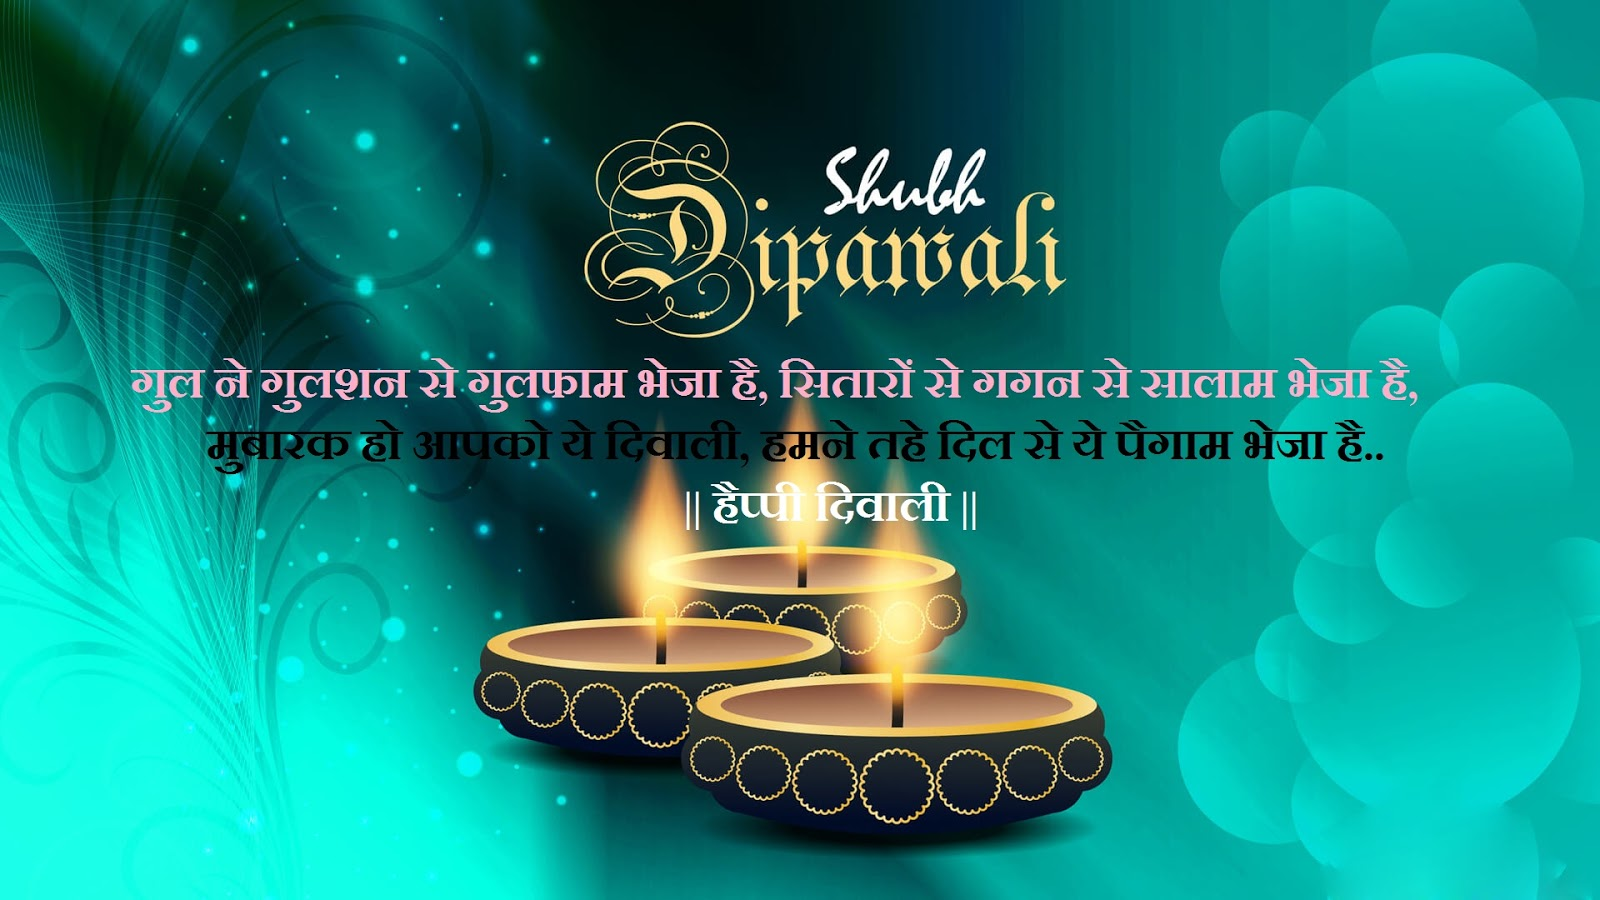 Happy Diwali Images Diwali Greetings Images Love Relation